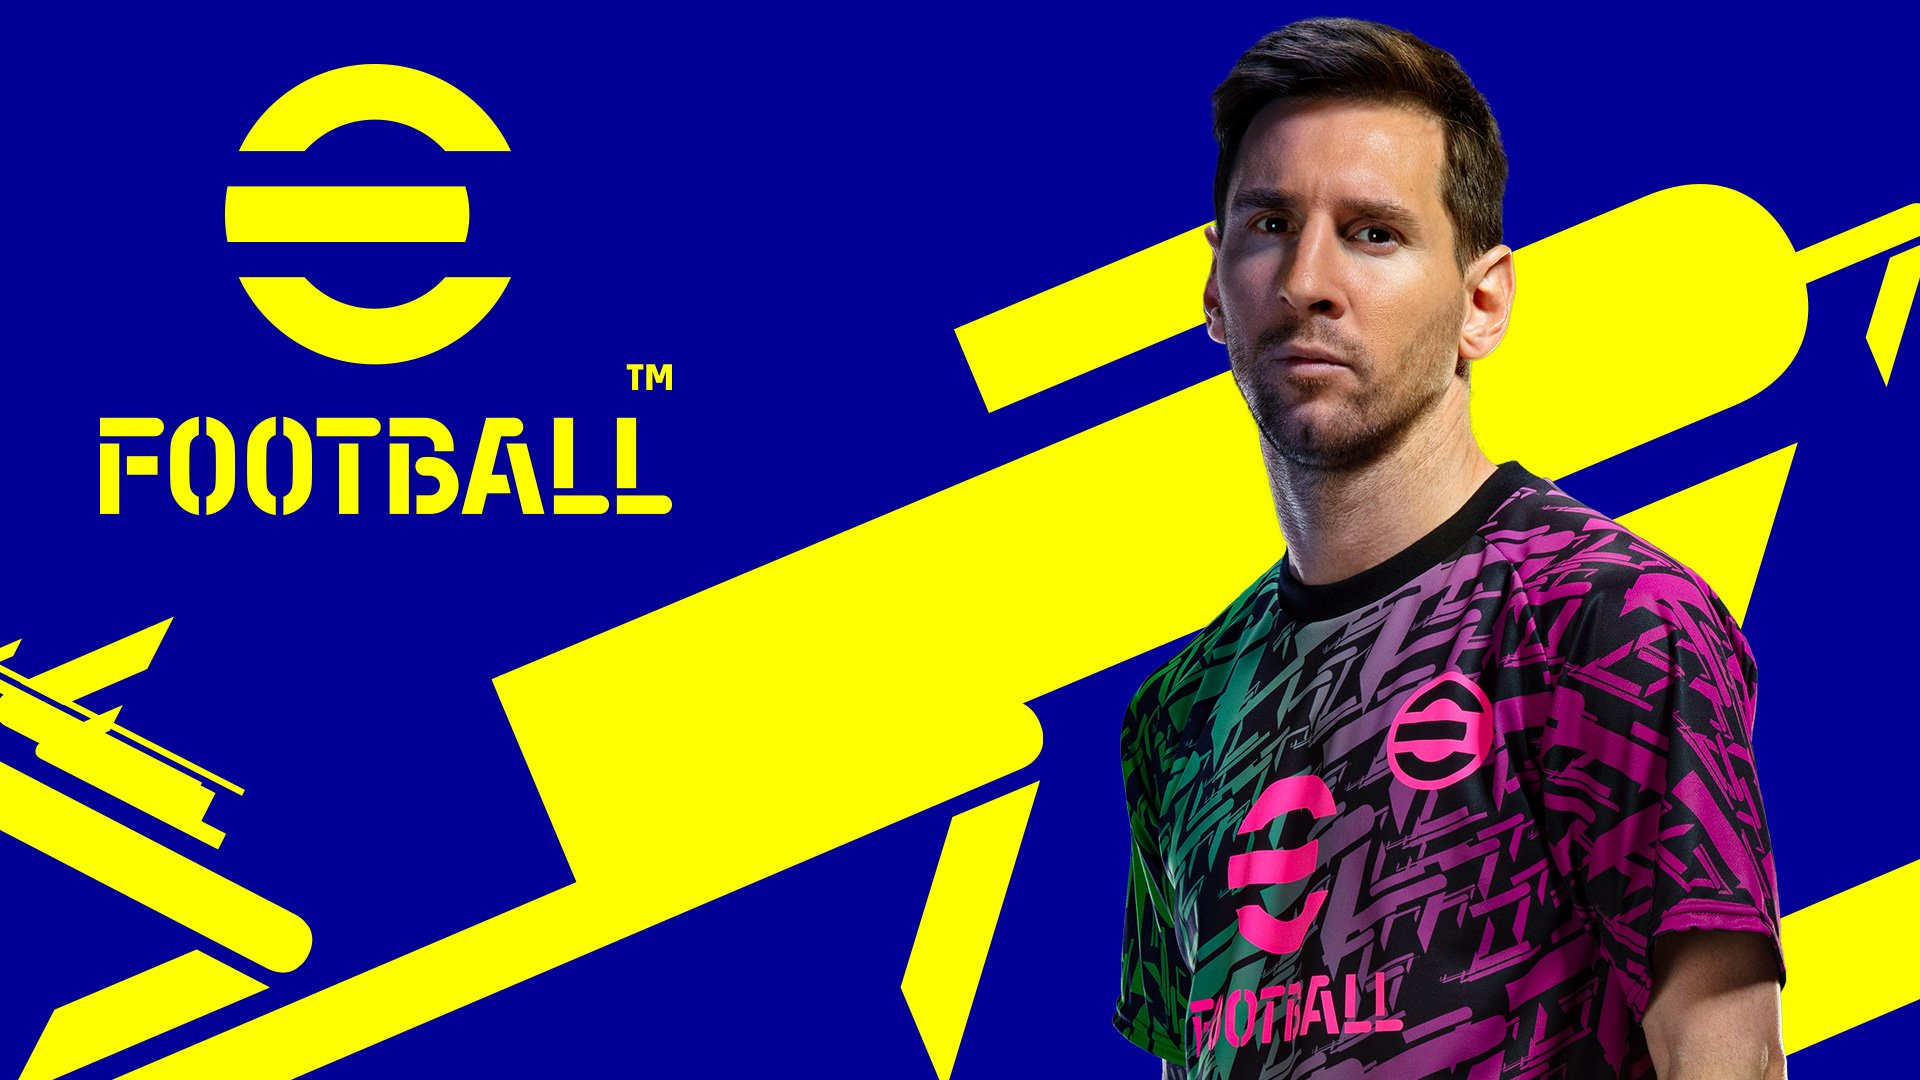 eFootball 2022 is Coming to Xbox Series X/S and Xbox One - Core Xbox